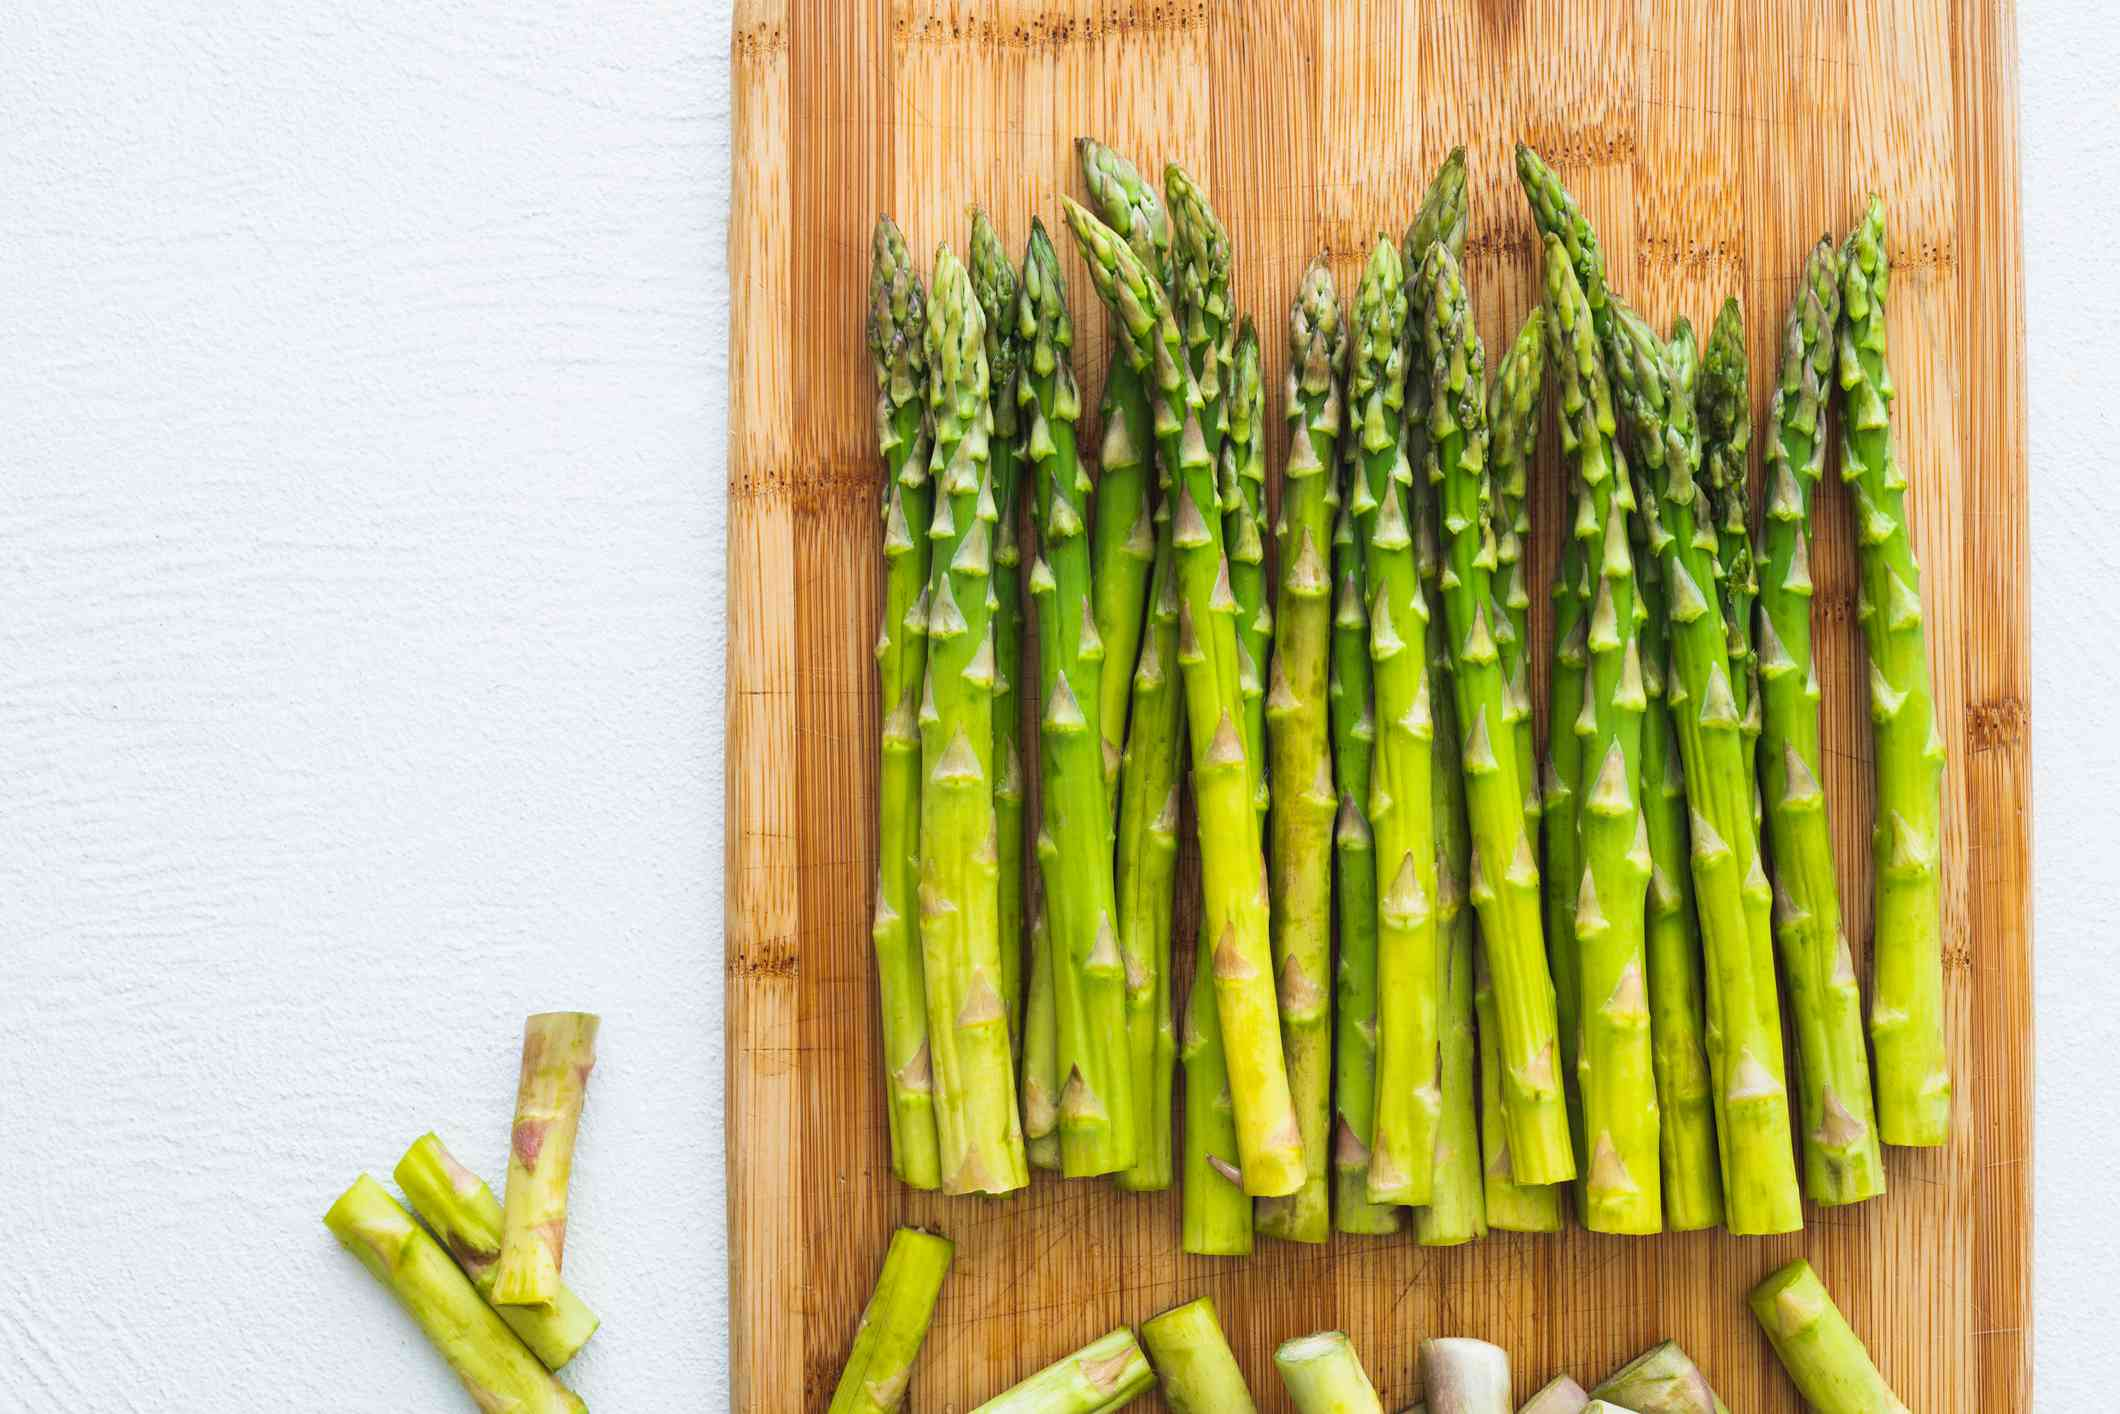 Asparagus on a Wooden Chopping Board, Top View, Close Up on White Background. Cooking, Vegetarian, Healthy Eating